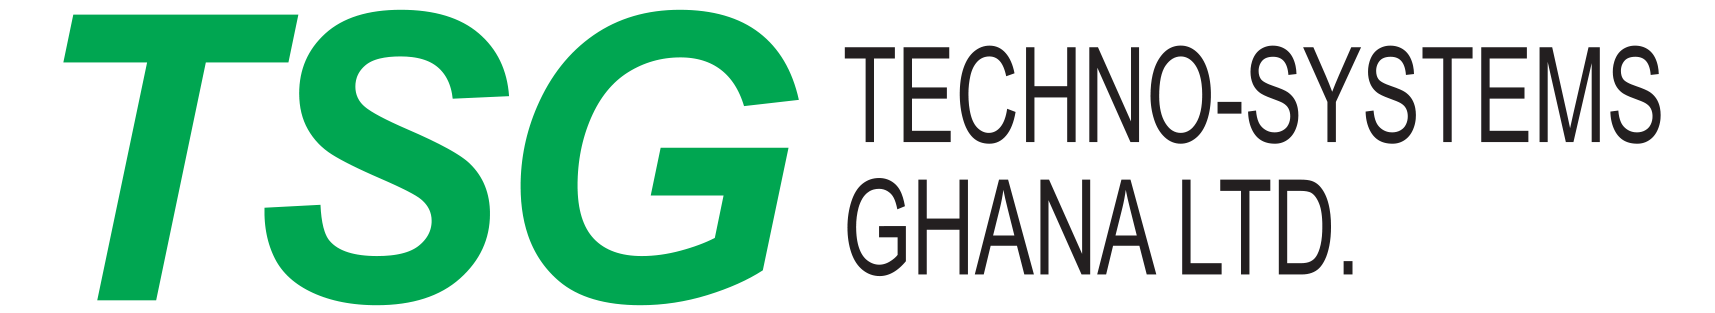 Techno Systems Ghana Limited